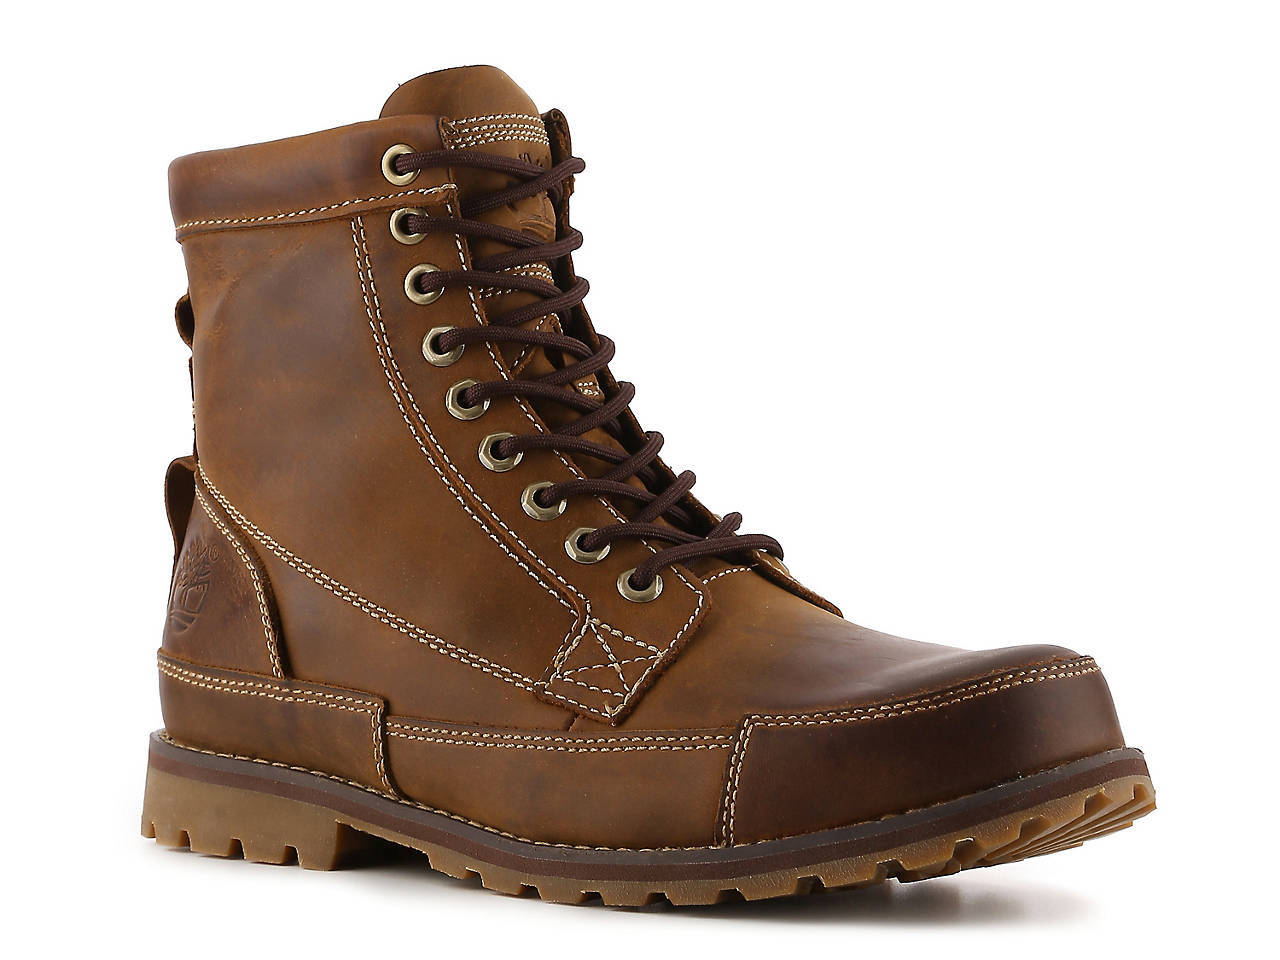 Timberland. Earthkeepers Original Boot